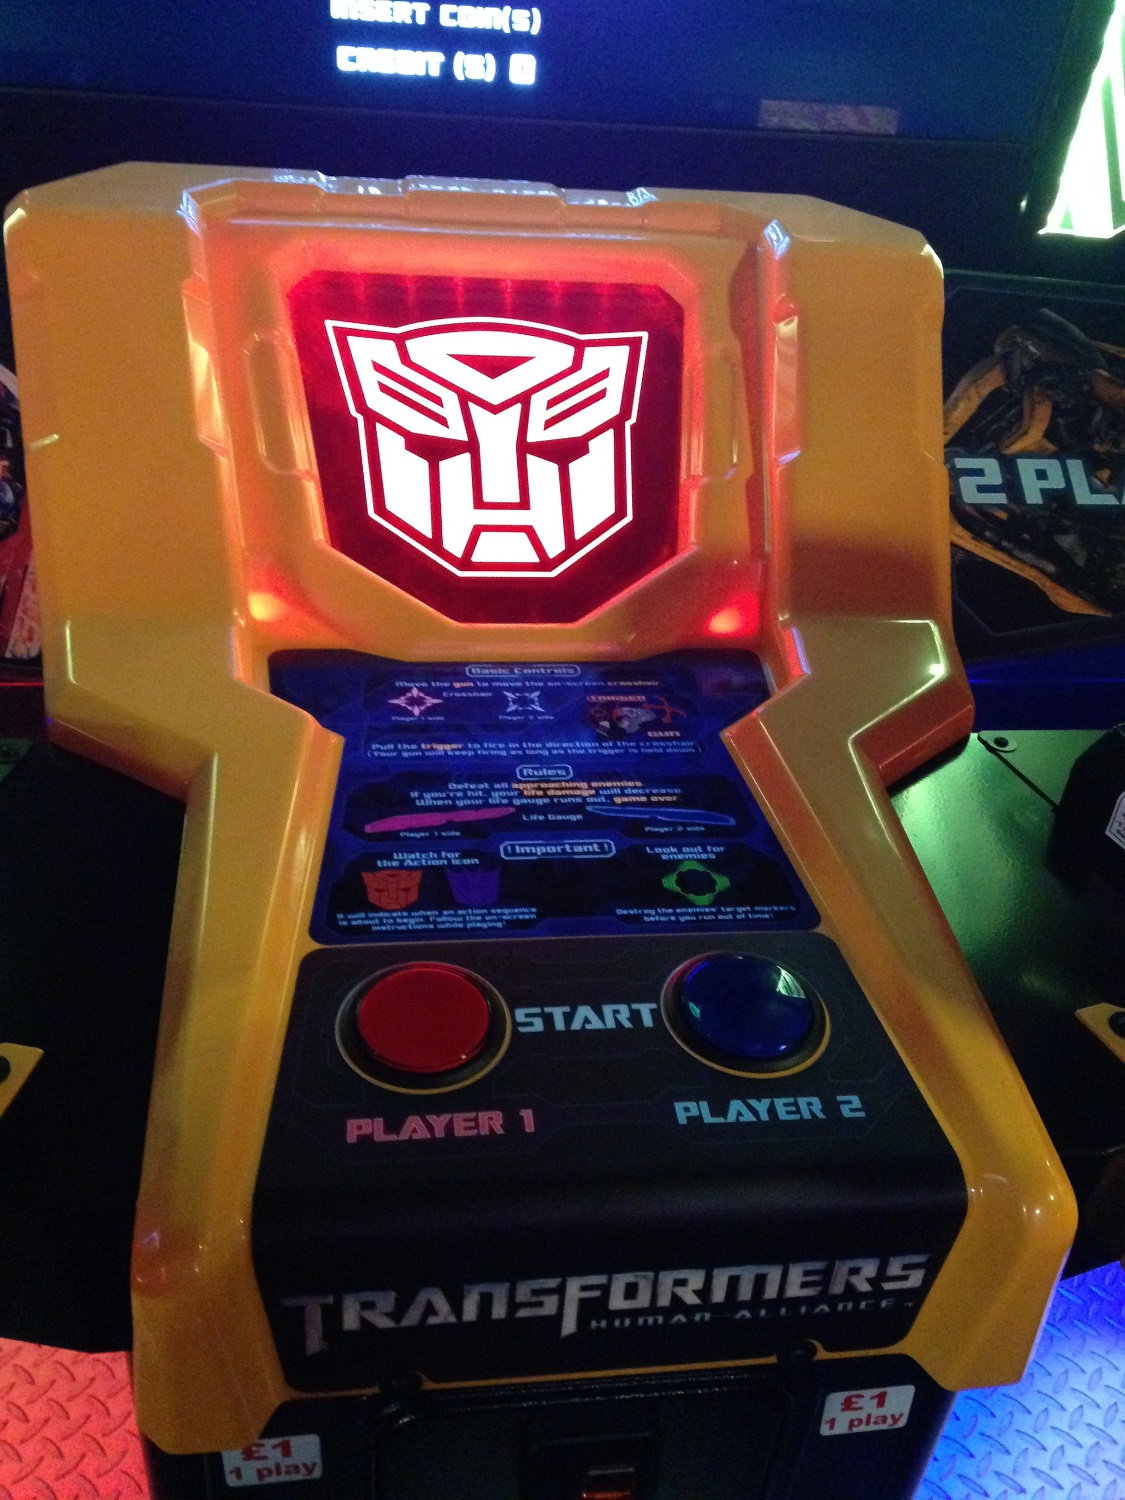 a closer look at the transformers human alliance arcade